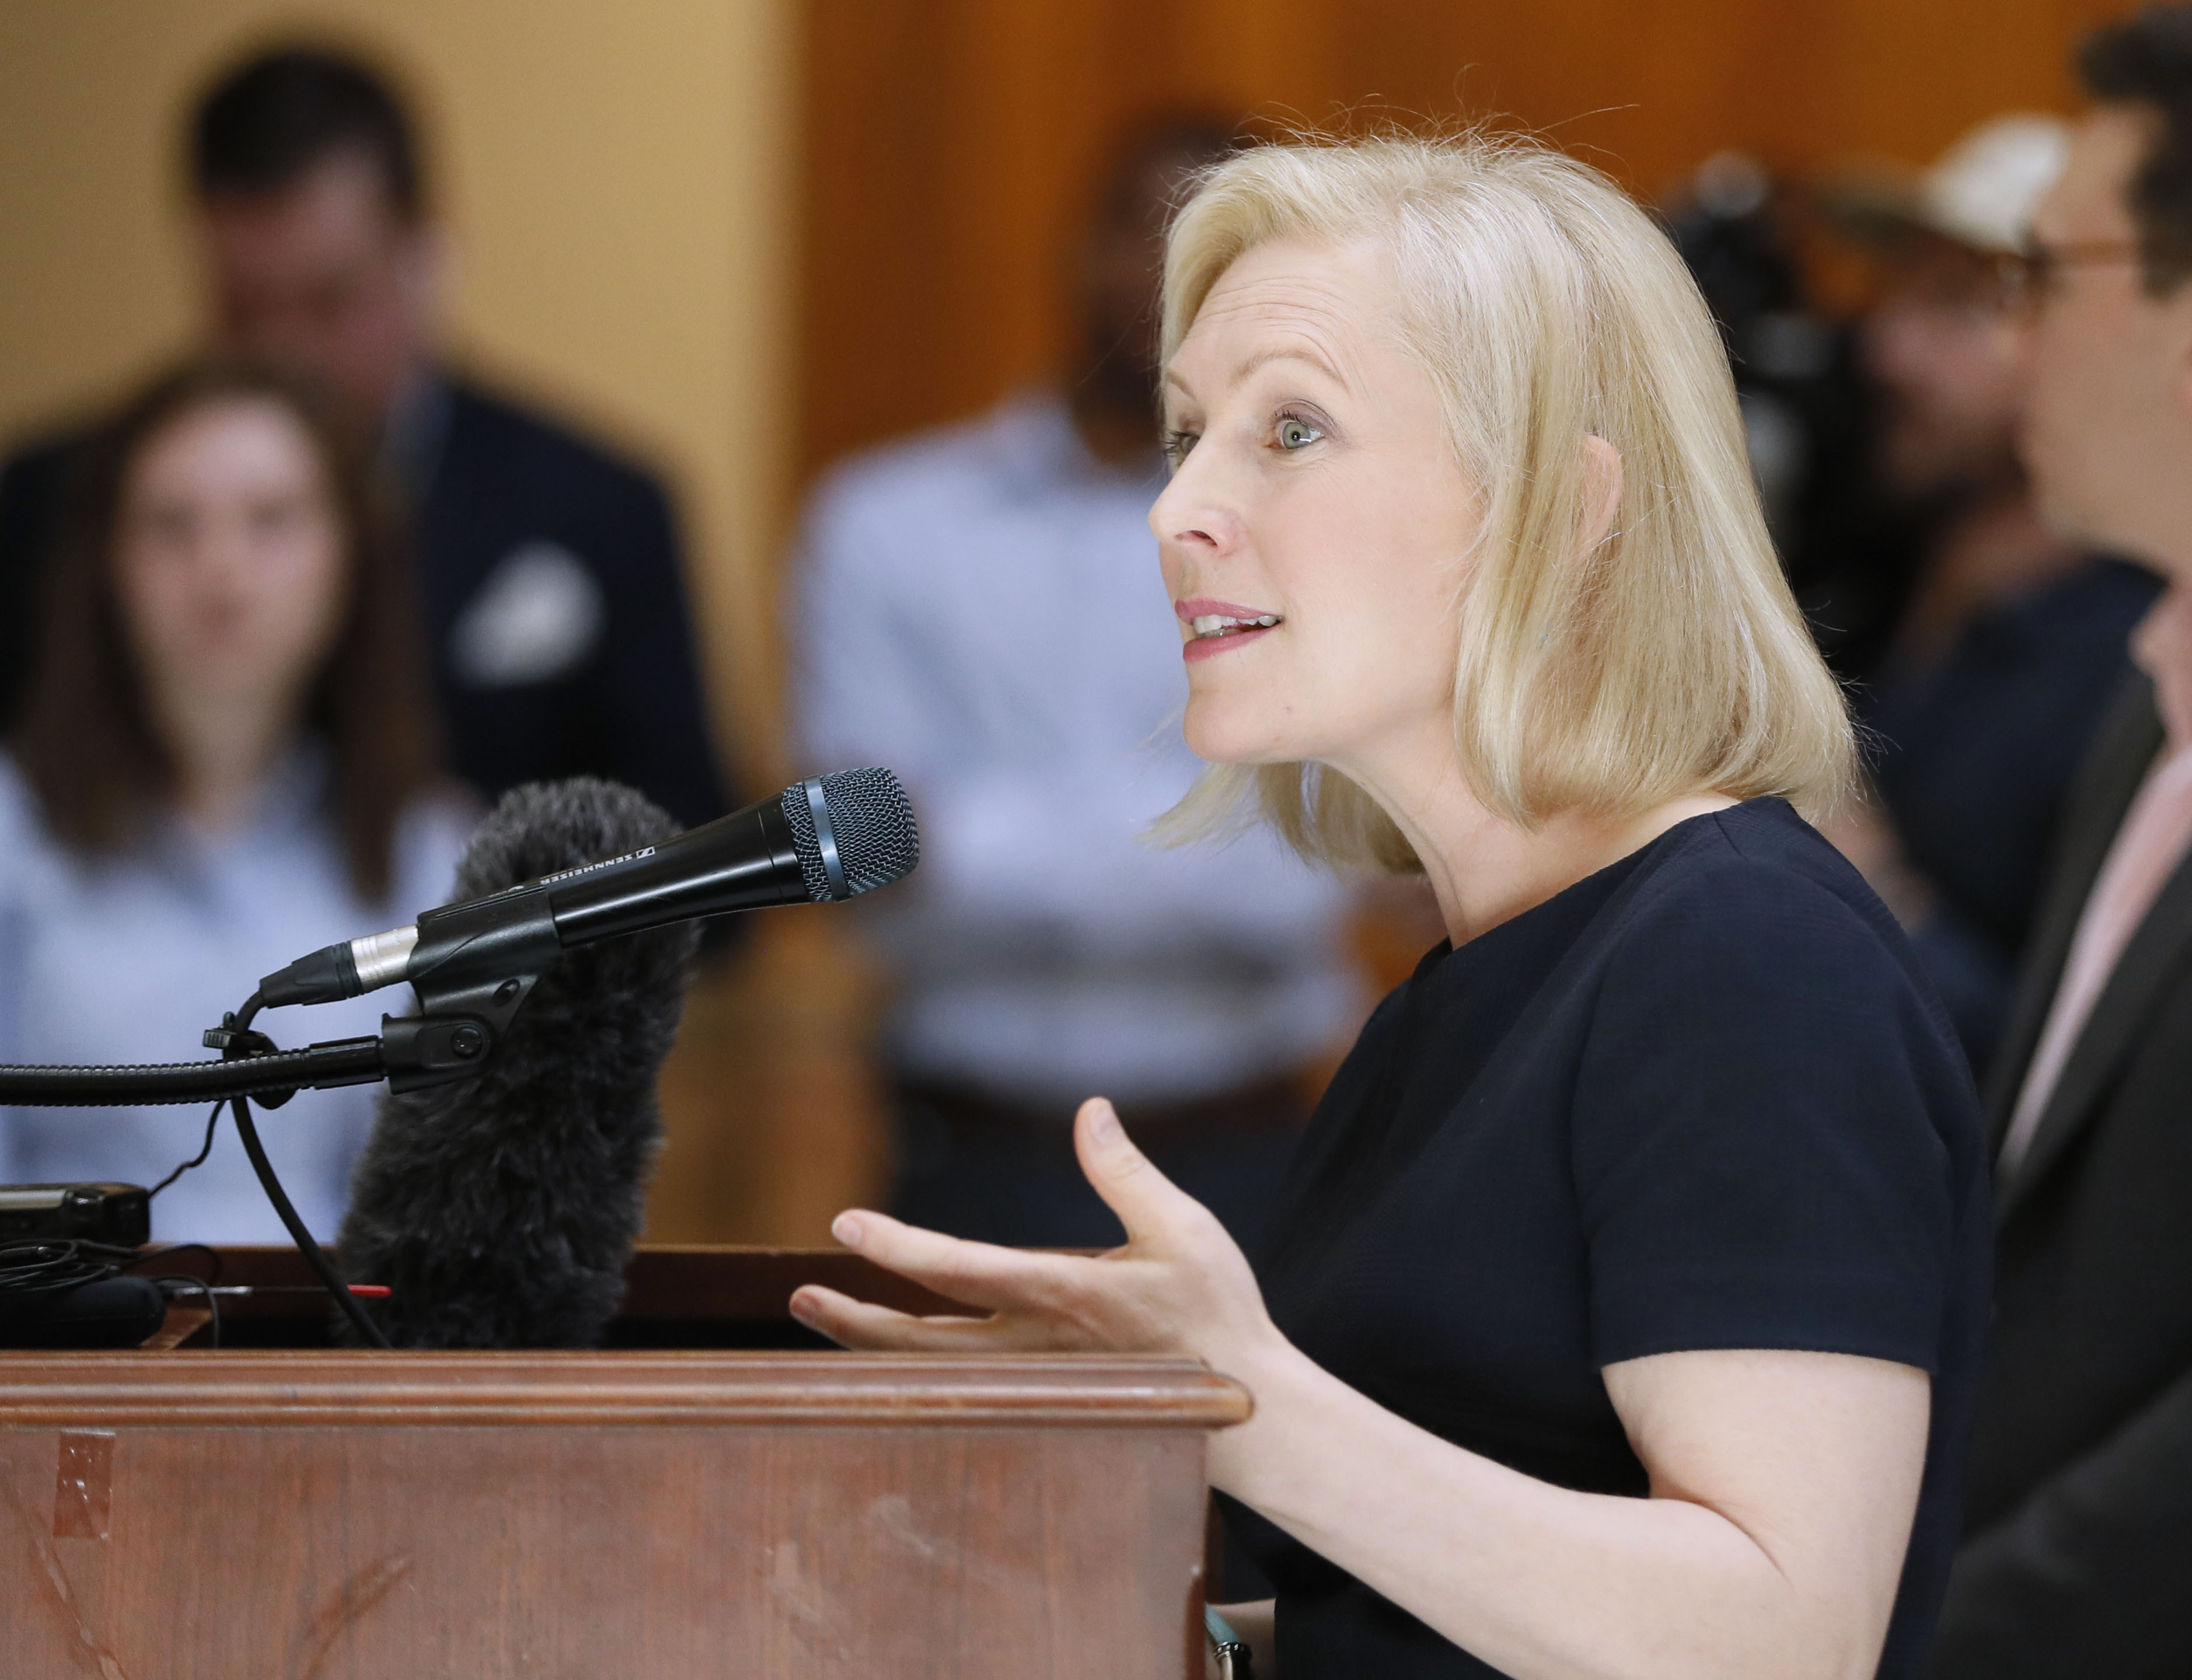 2020 Democrat Kirsten Gillibrand won't detain migrants: 'They can go into the community'